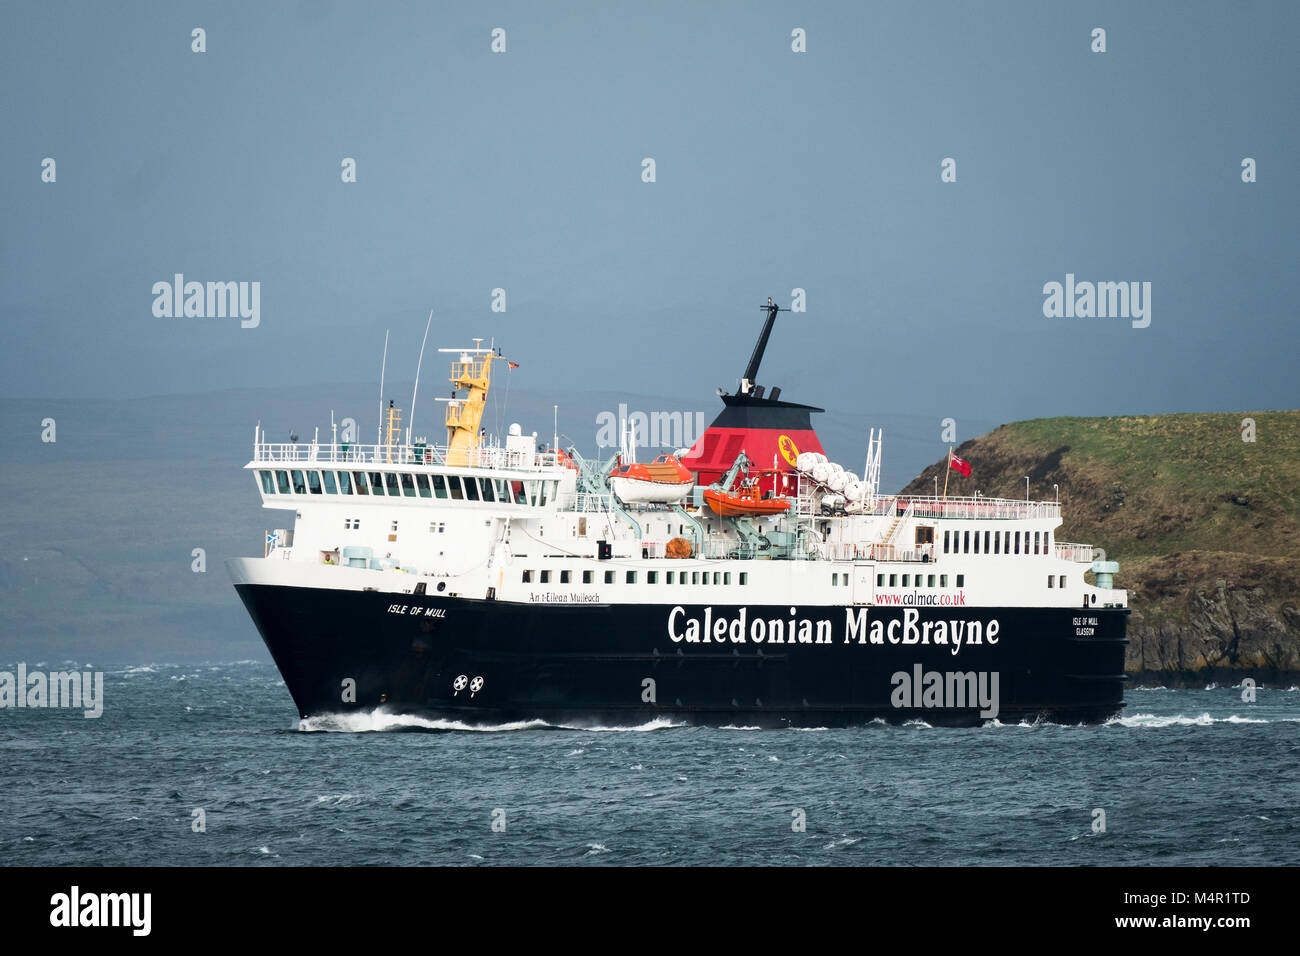 The Caledonian MacBrayne ferry the Isle of Mull sails into Oban Harbour on its return journey from Craignure, on - Stock Image